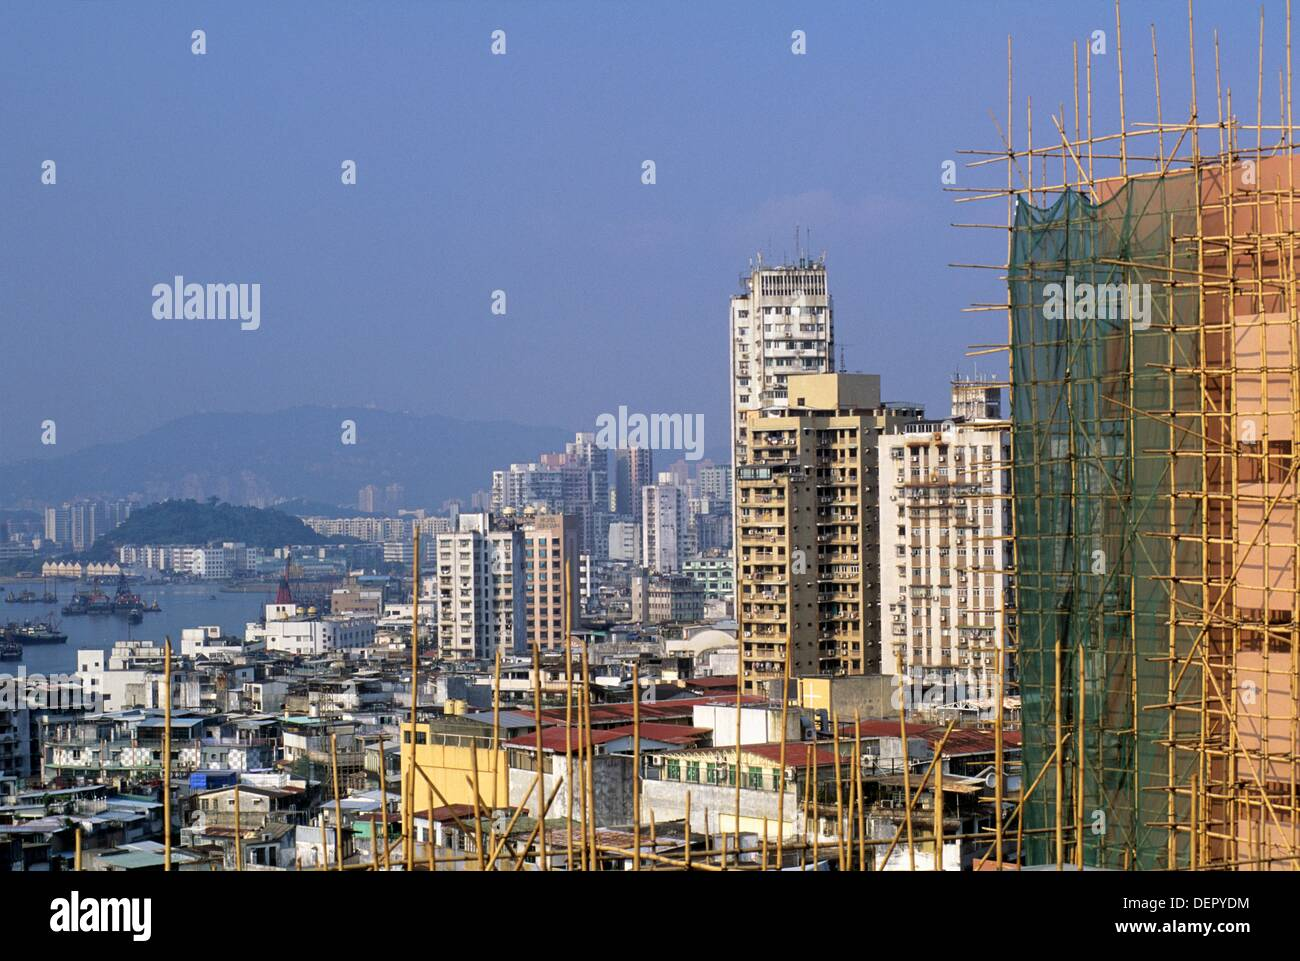 skyscaper under construction, Macau, Special Administrative Region, China, Asia - Stock Image